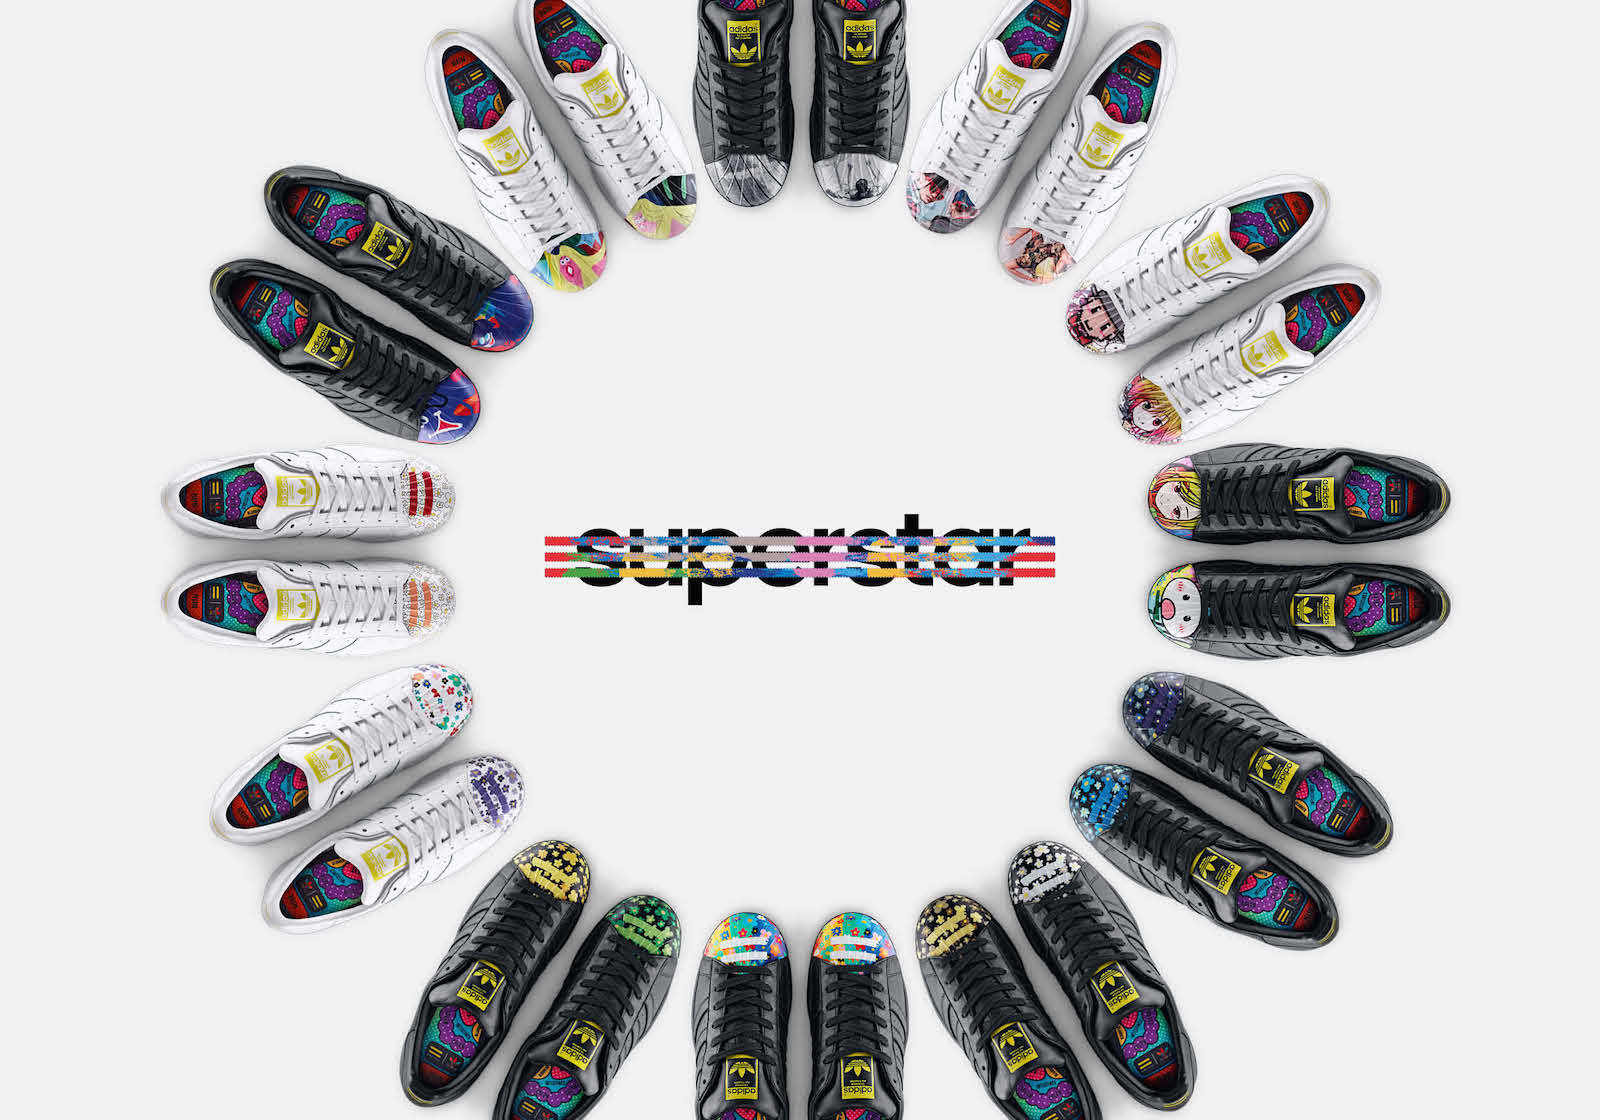 Adidas Superstar X Pharrell Williams – Supershell Artwork Collection